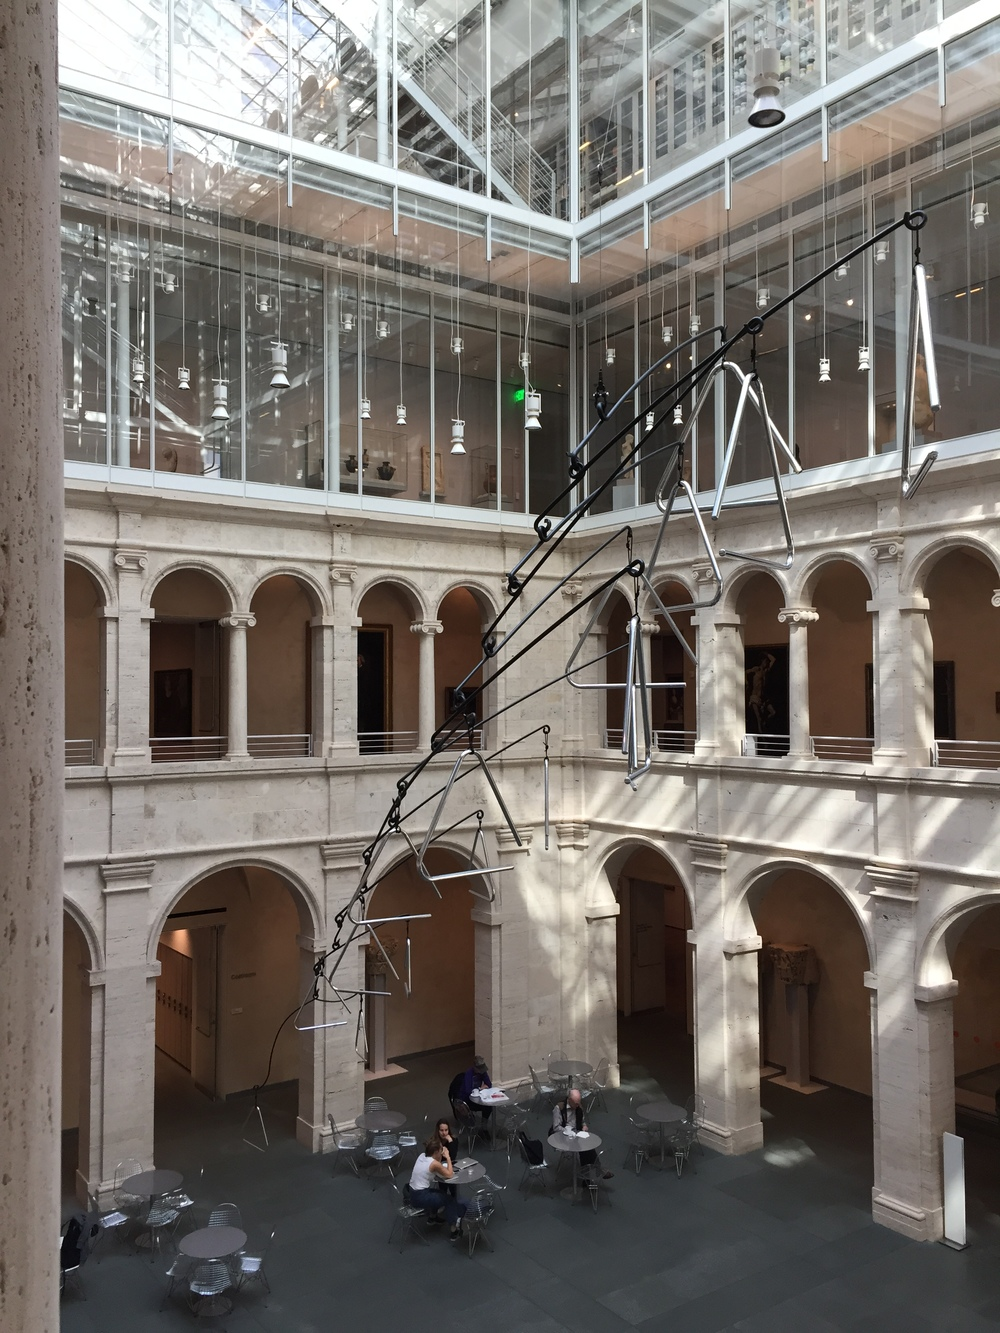 The central courtyard around which all the galleries are arranged is now flooded with light from above